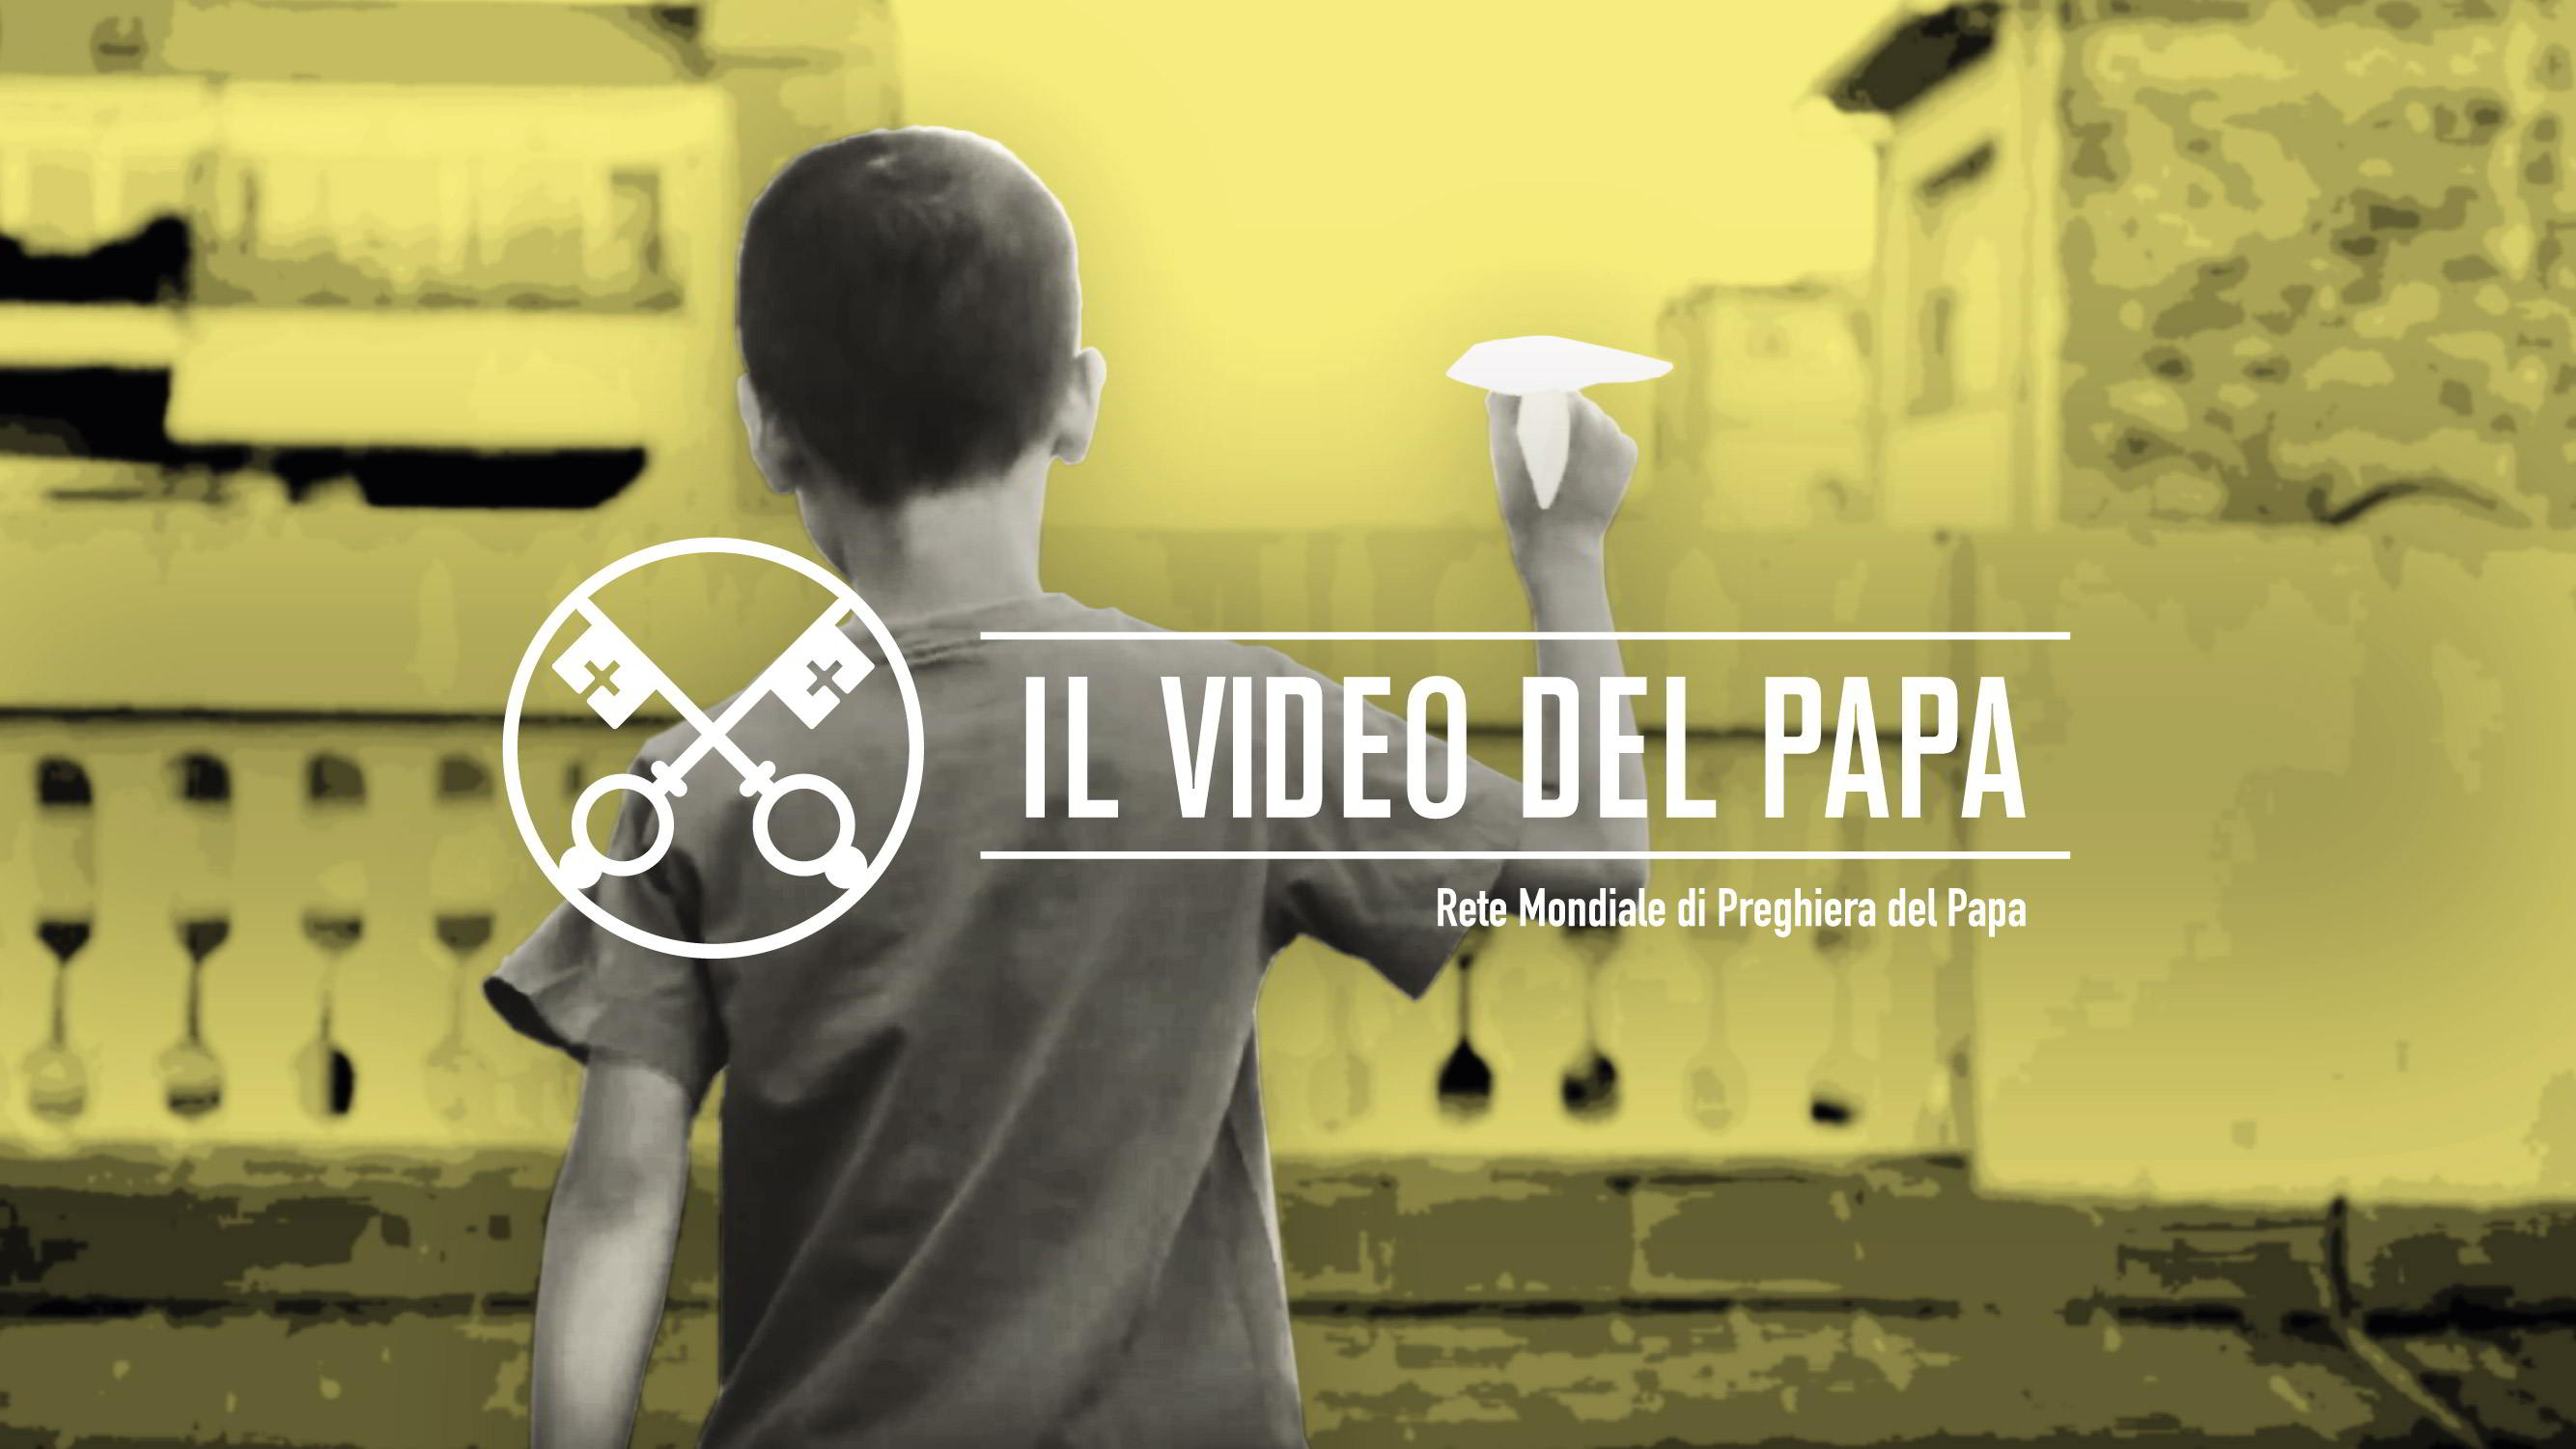 Official-Image-TPV-10-2019-IT-Il-Video-del-Papa-Primavera-missionaria-nella-Chiesa